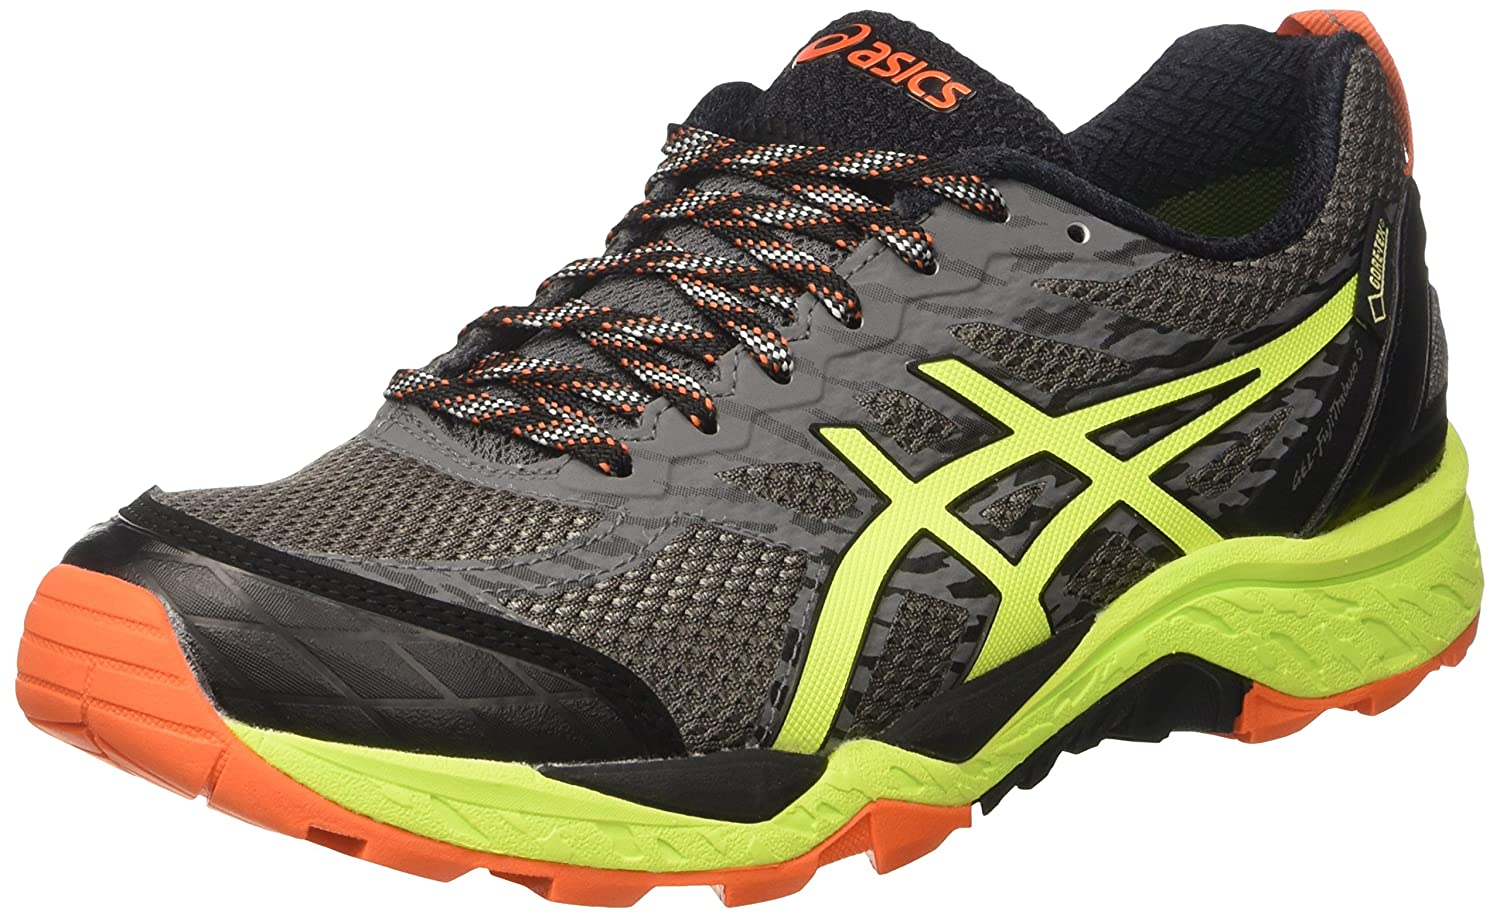 Asics Gel-Fujitrabuco 5 GTX, Zapatillas de Trail Running Para Hombre 42 EU|Varios Colores (Shark / Safety Yellow / Black)